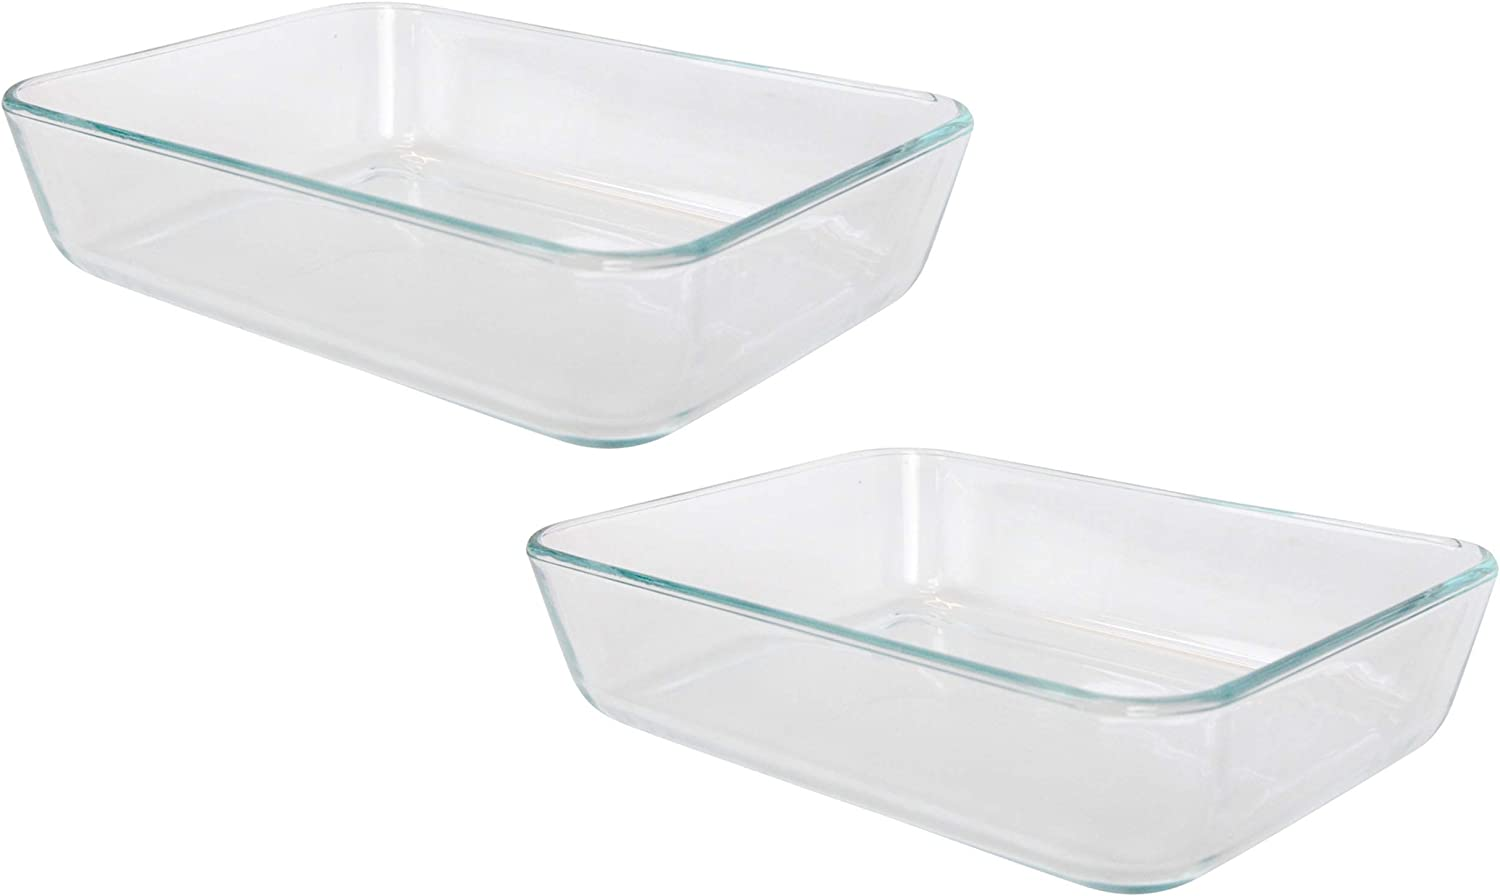 Pyrex Simply Store 7210 Rectangle Clear Glass Food Storage Container - 2 Pack